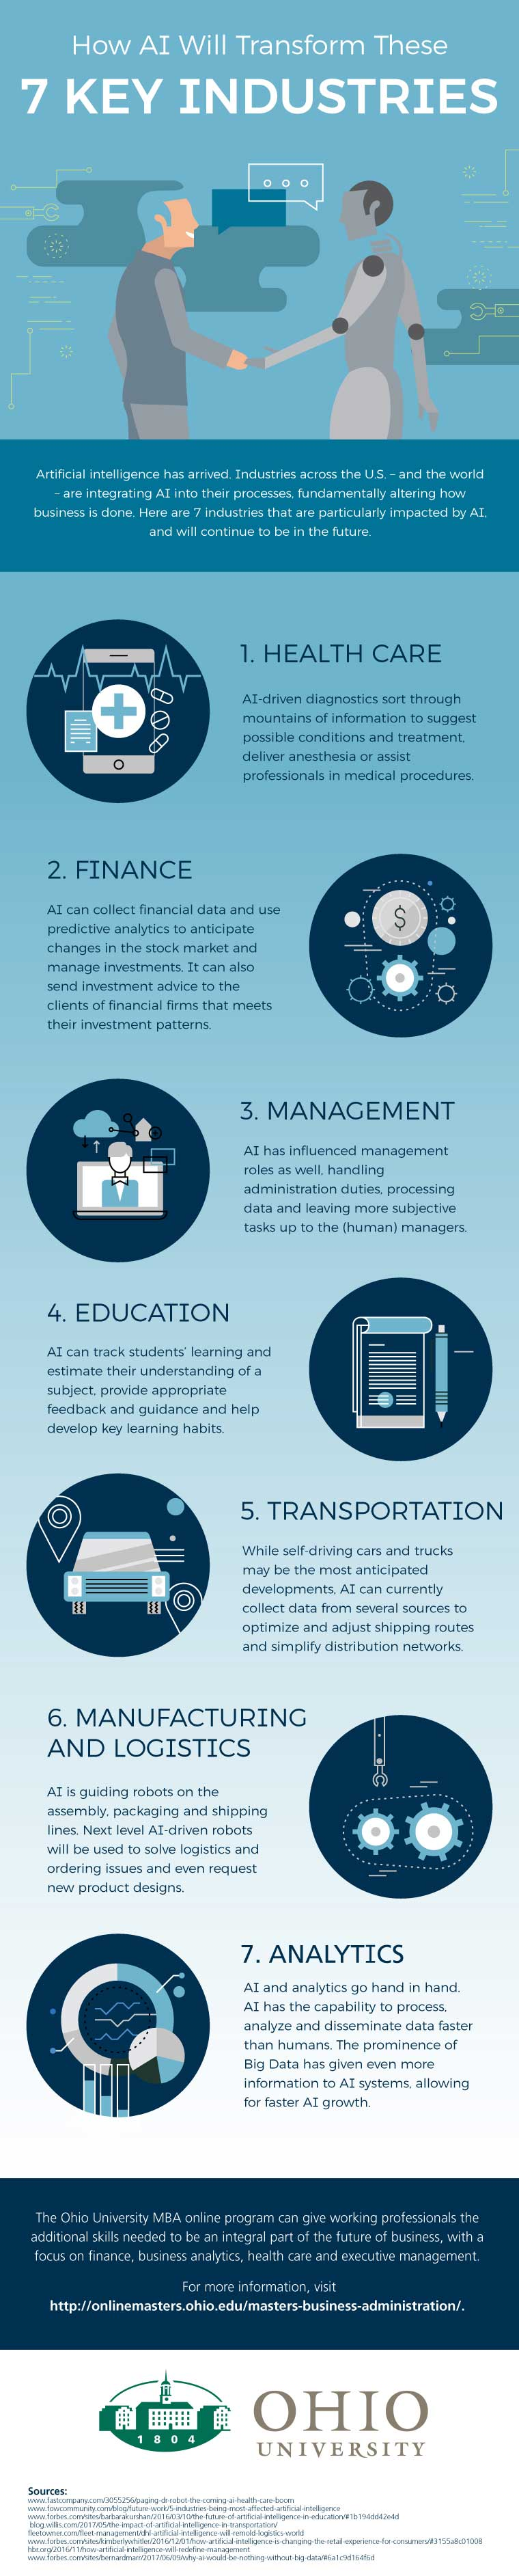 Artificial Intelligence's Impact in 7 Key Industries - Infographic